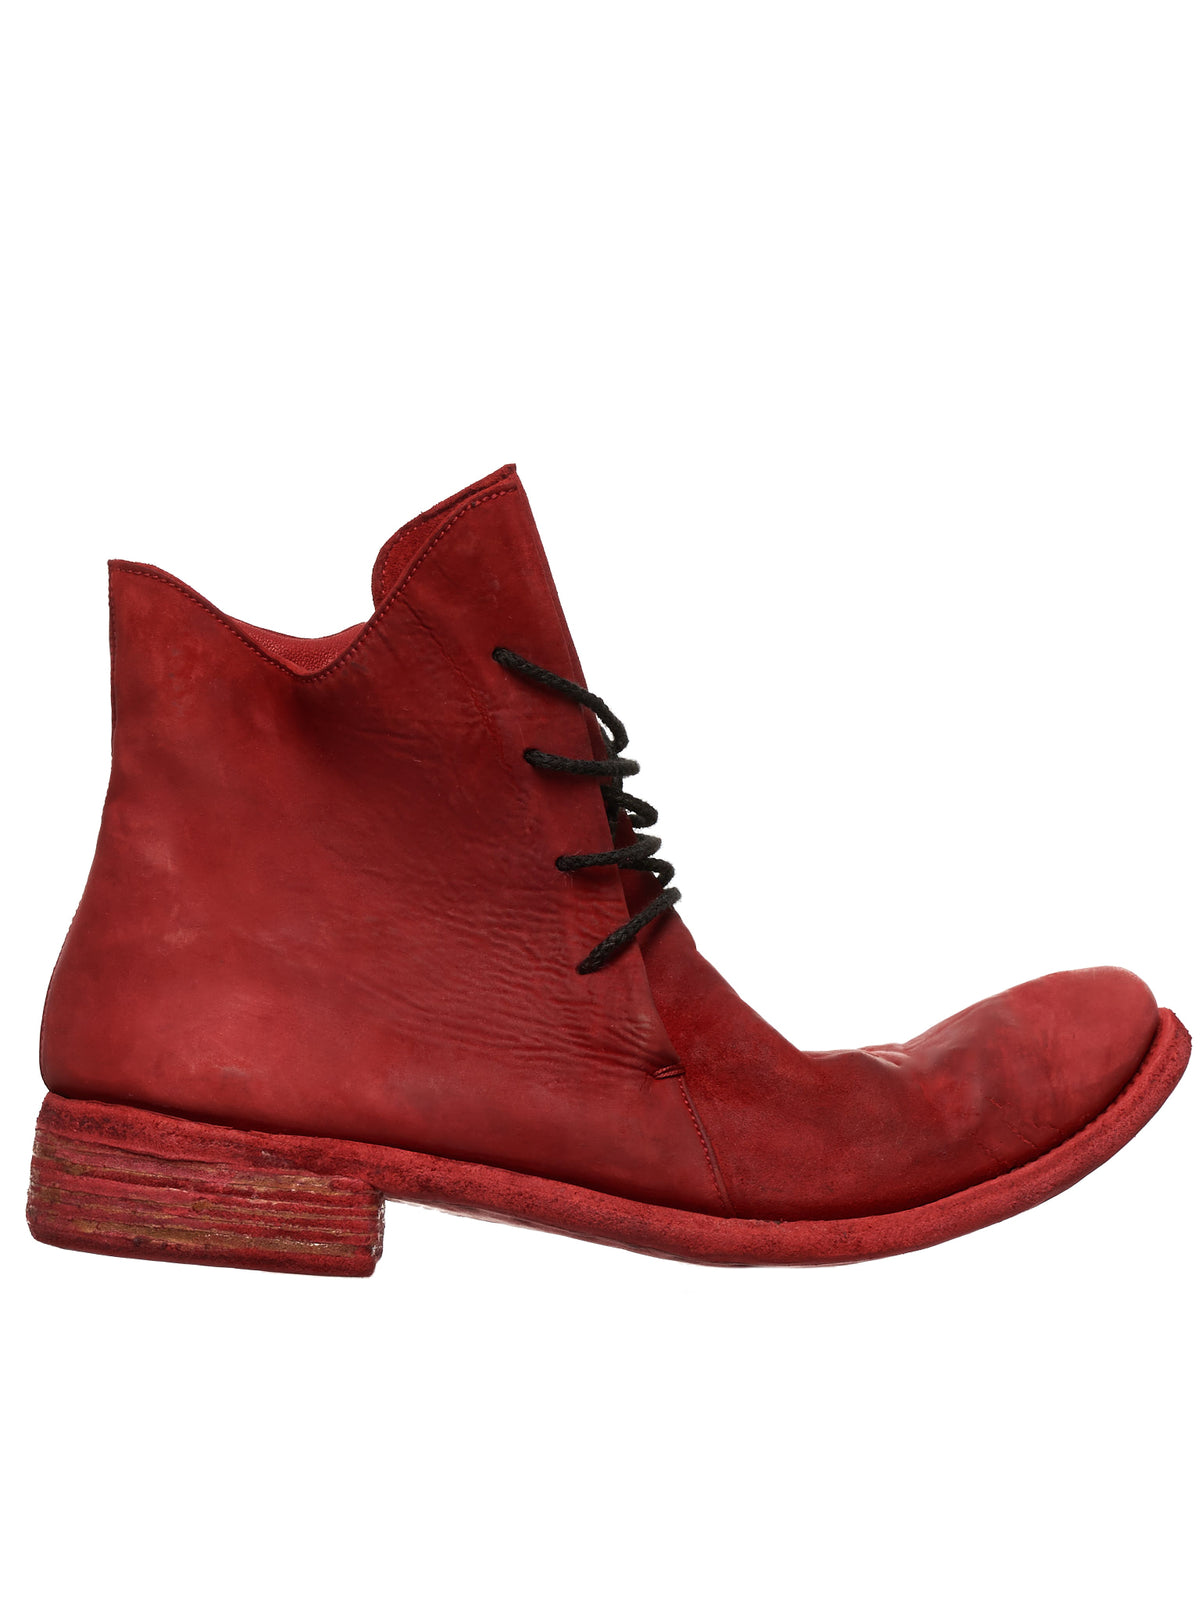 A Diciannoveventitre Boots - Hlorenzo Front